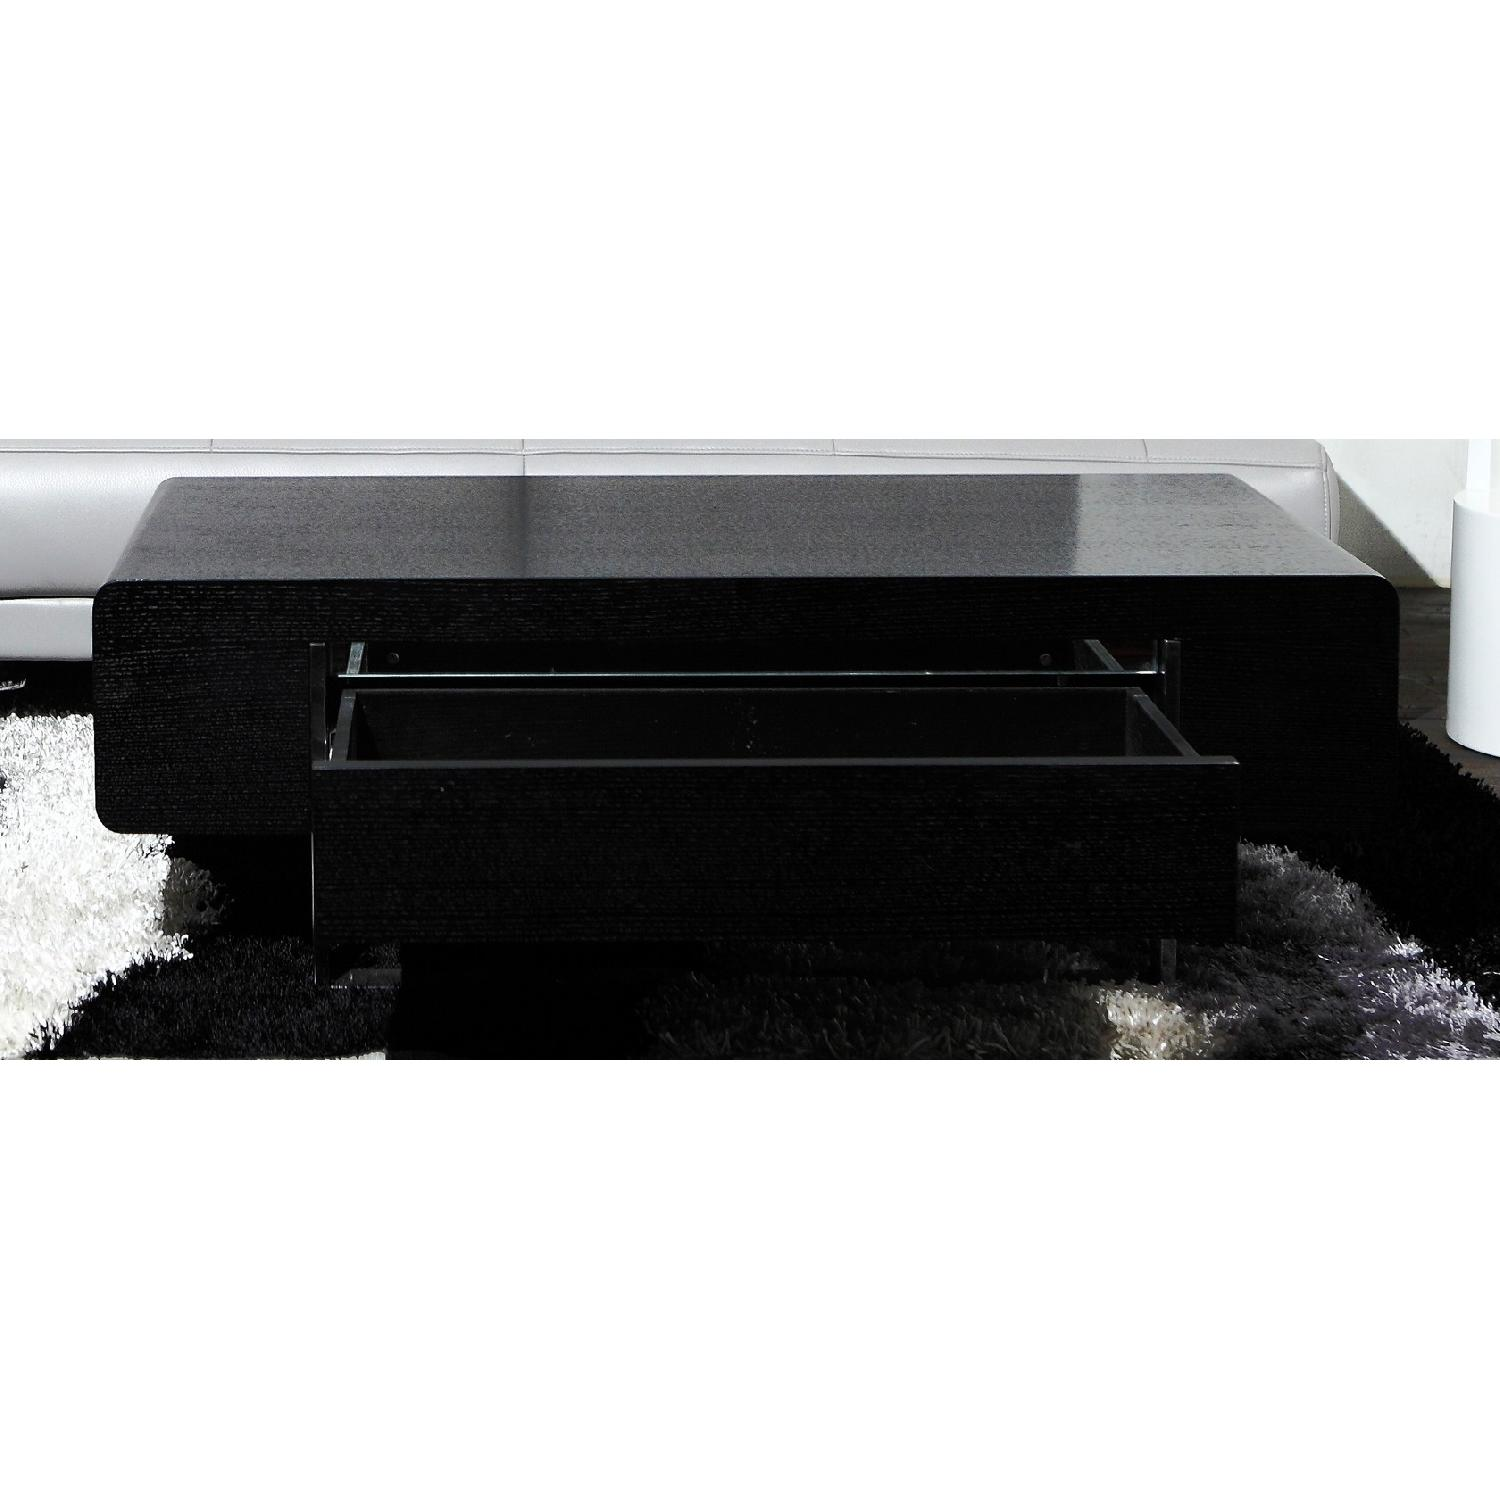 Modern Coffee Table in Matte Black Finish w/ Storage Drawer -2